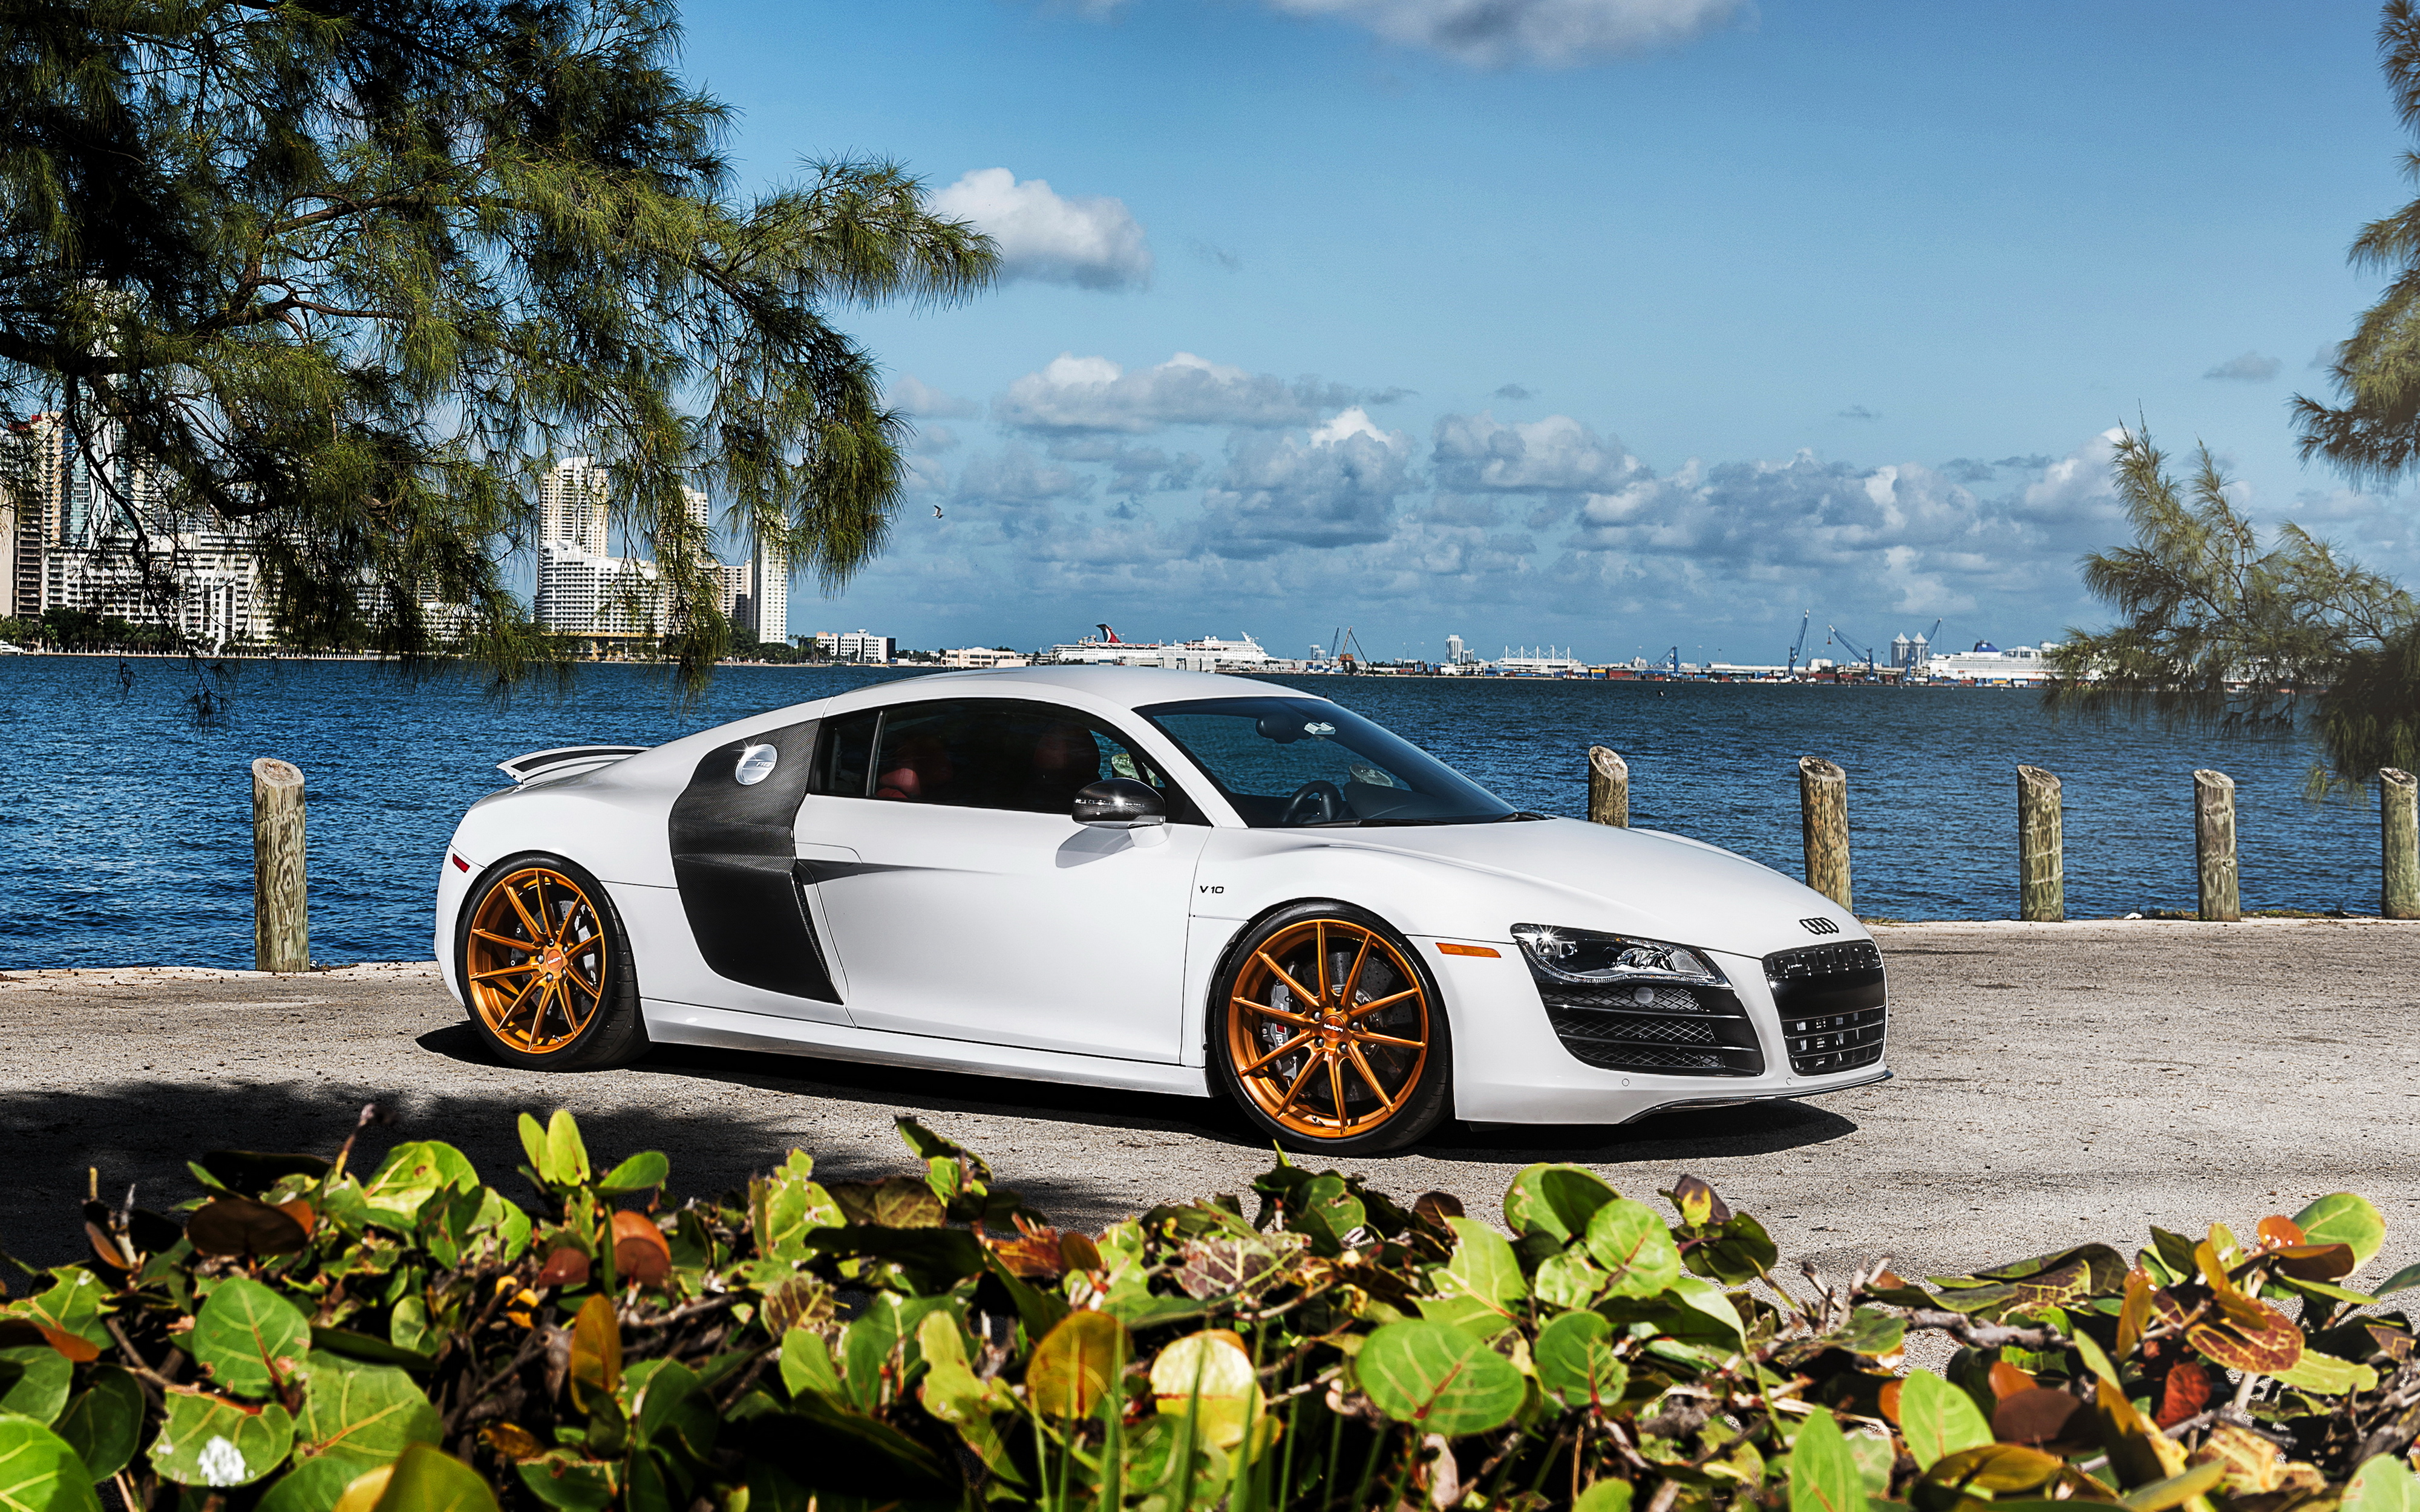 Audi r8 4k ultra hd wallpaper and background image - Wallpaper hd 4k car ...